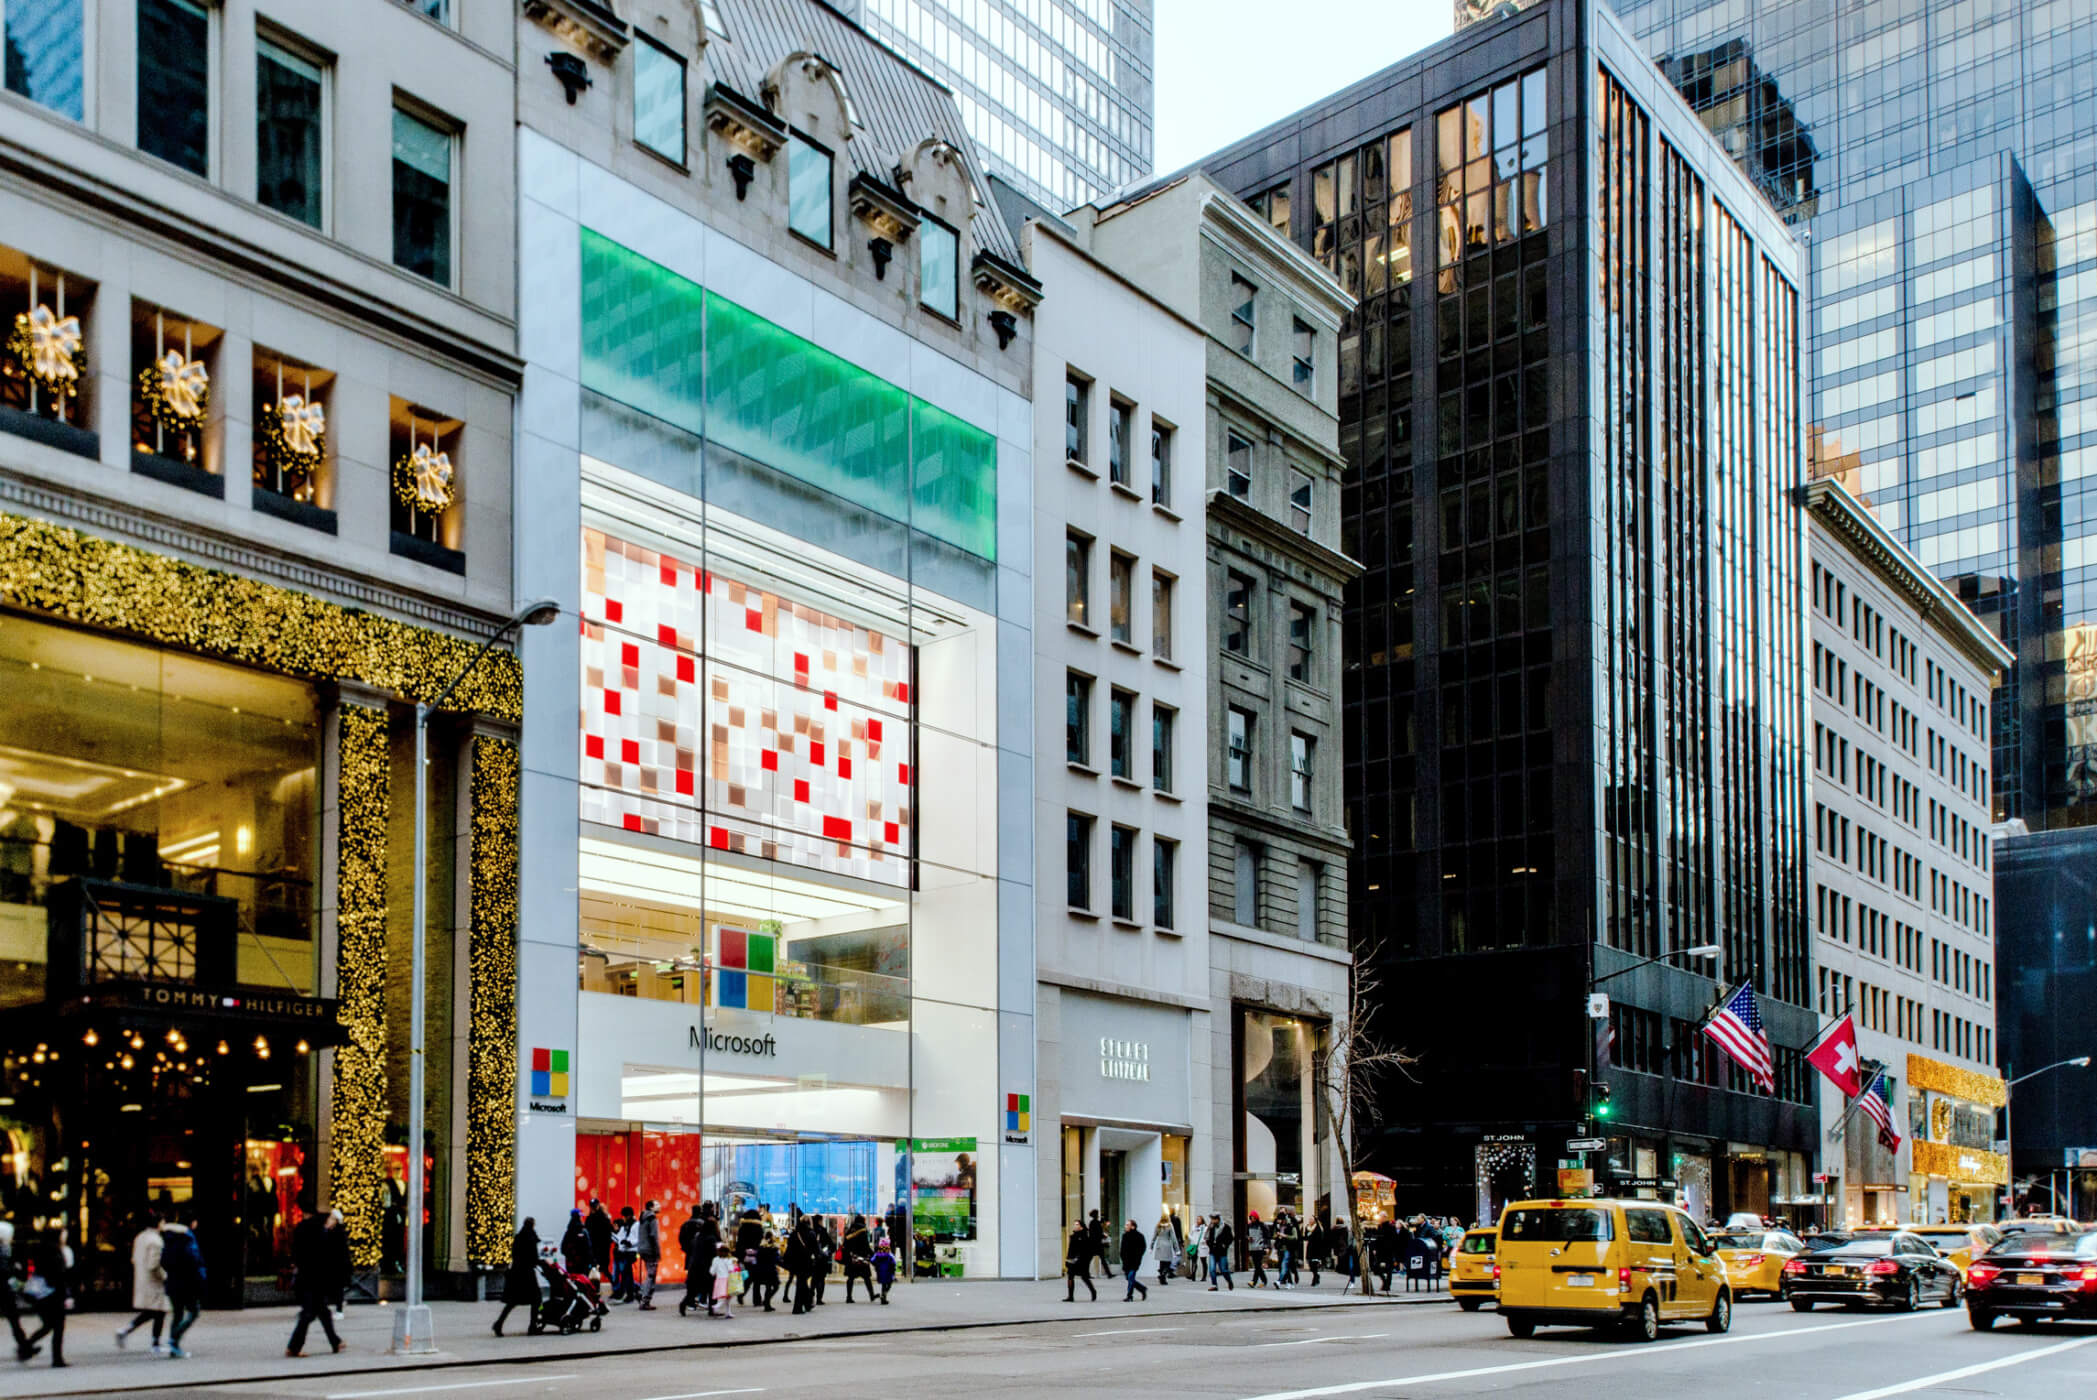 Microsoft Flagship Store In New York Moment Factory